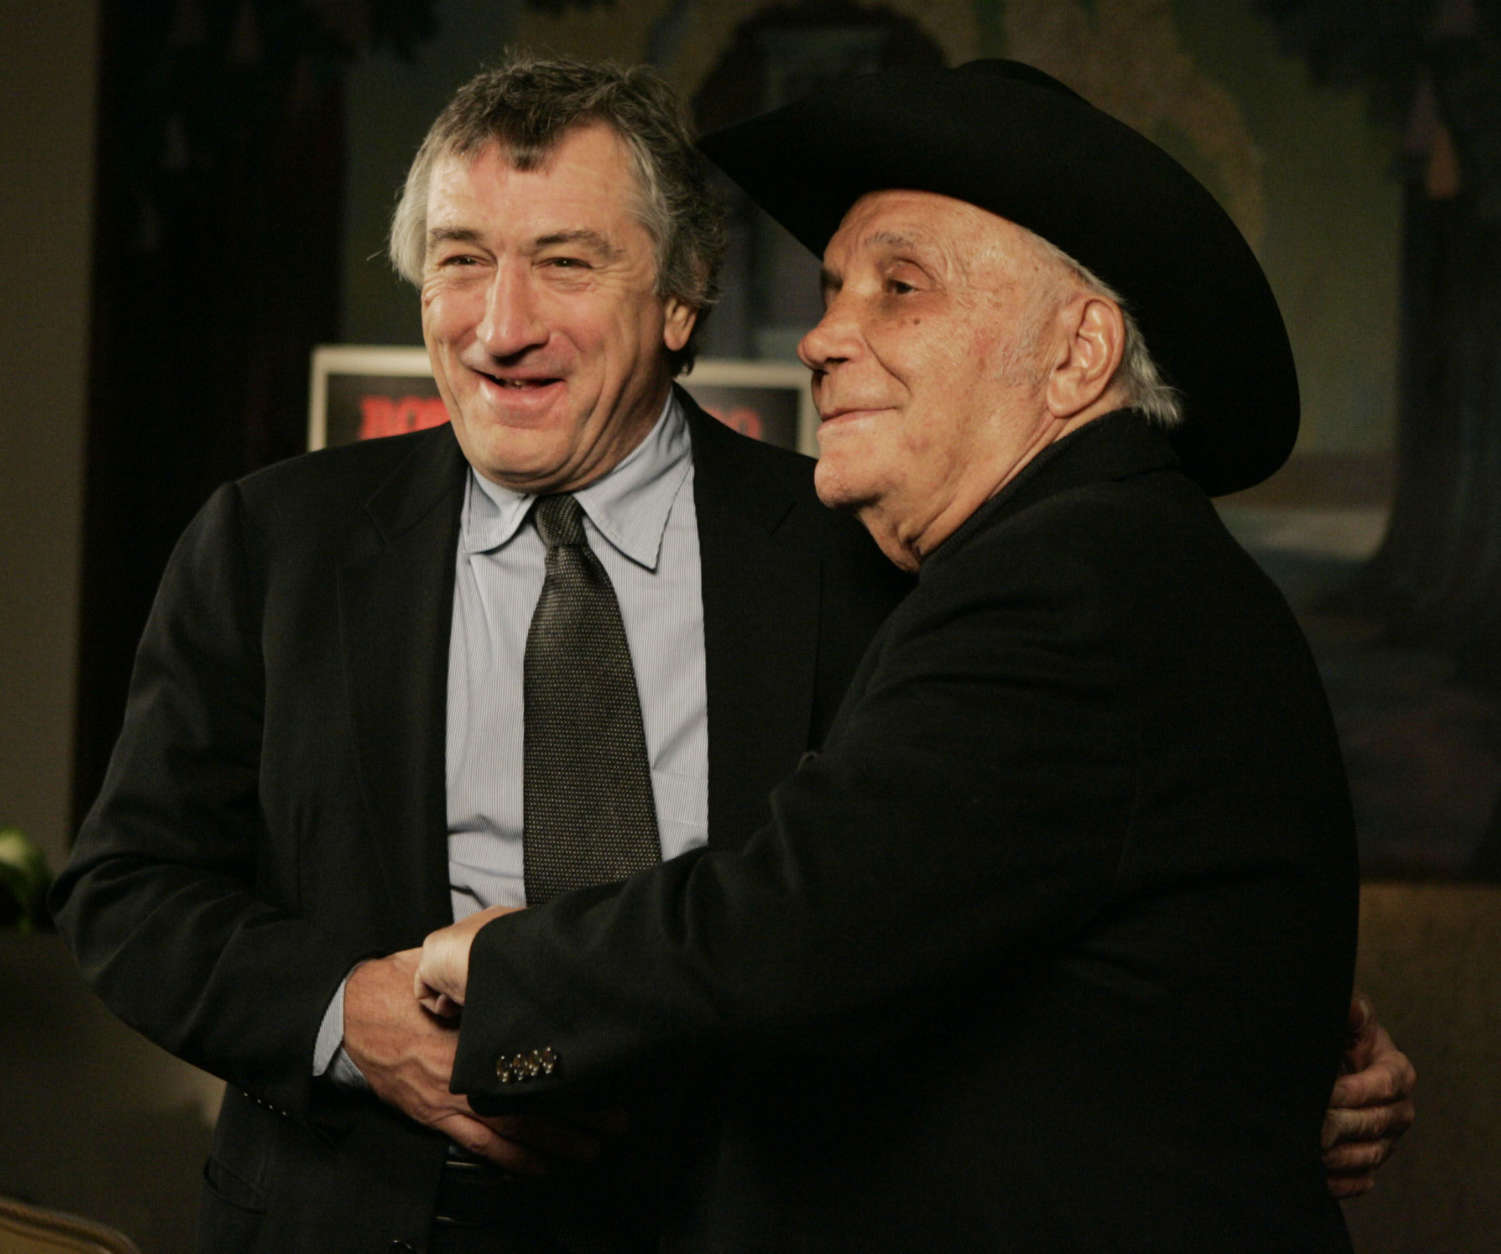 Robert DeNiro, left, and boxer Jake LaMotta stand for photographers before watching a 25th anniversary screening of the movie Thursday, Jan. 27, 2005 in New York. An anniversary collector's edition DVD of the film was also released.  (AP Photo/Julie Jacobson)